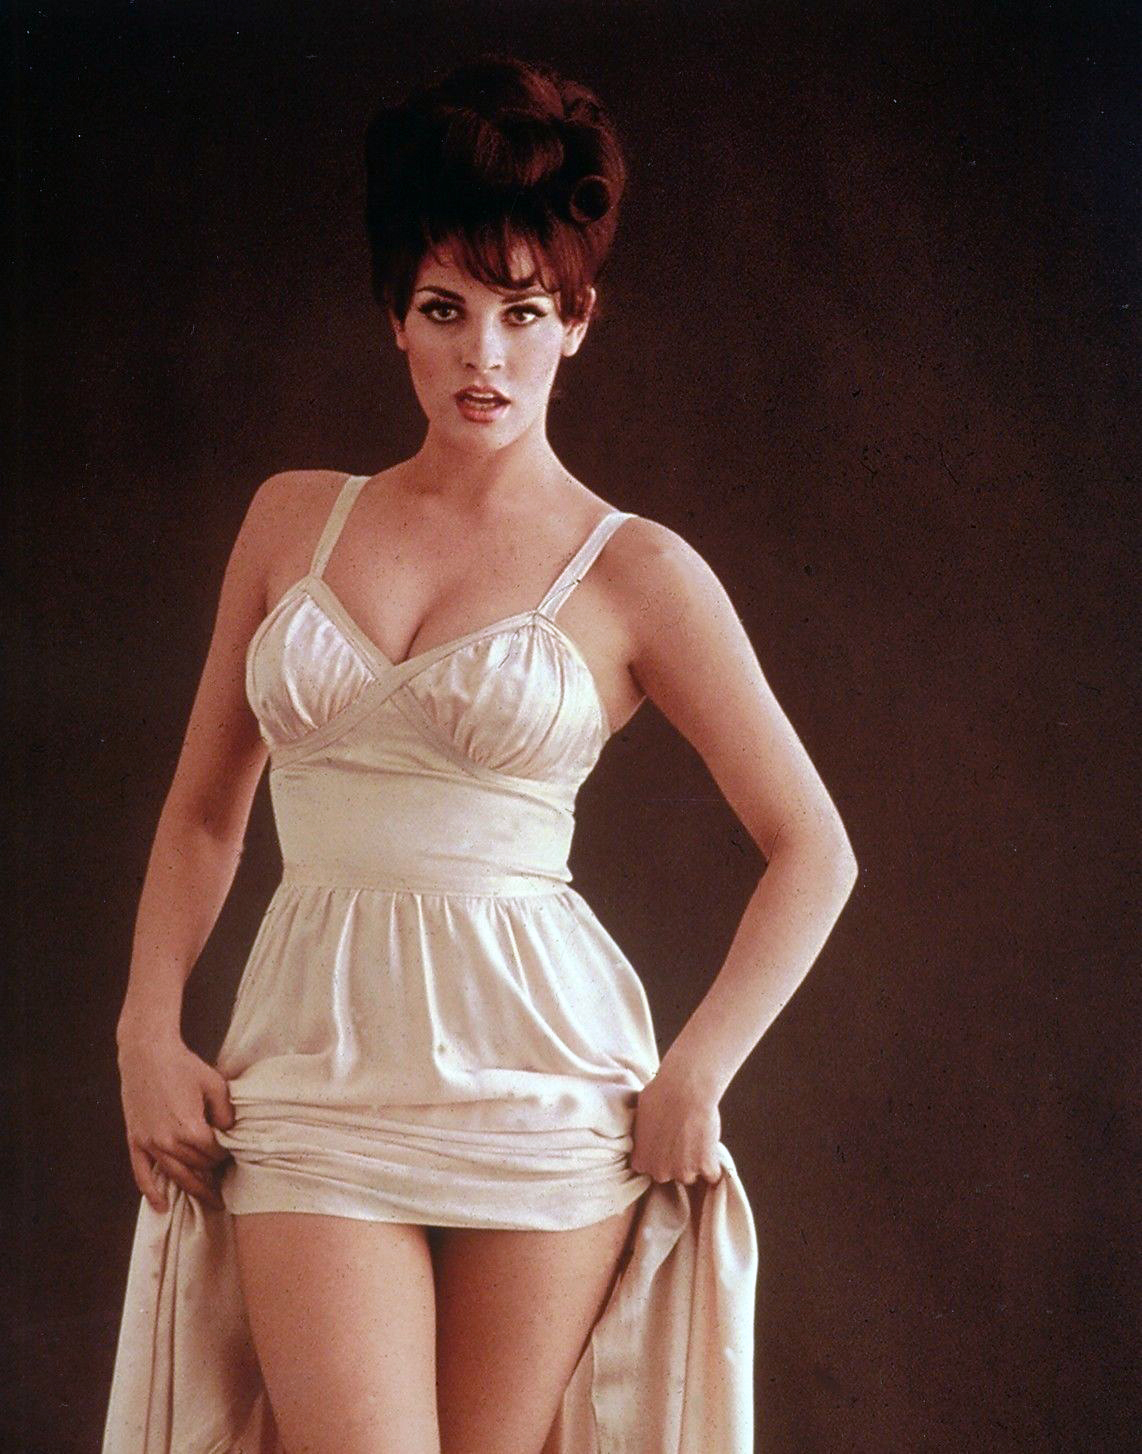 Sexy Pictures Of Raquel Welch